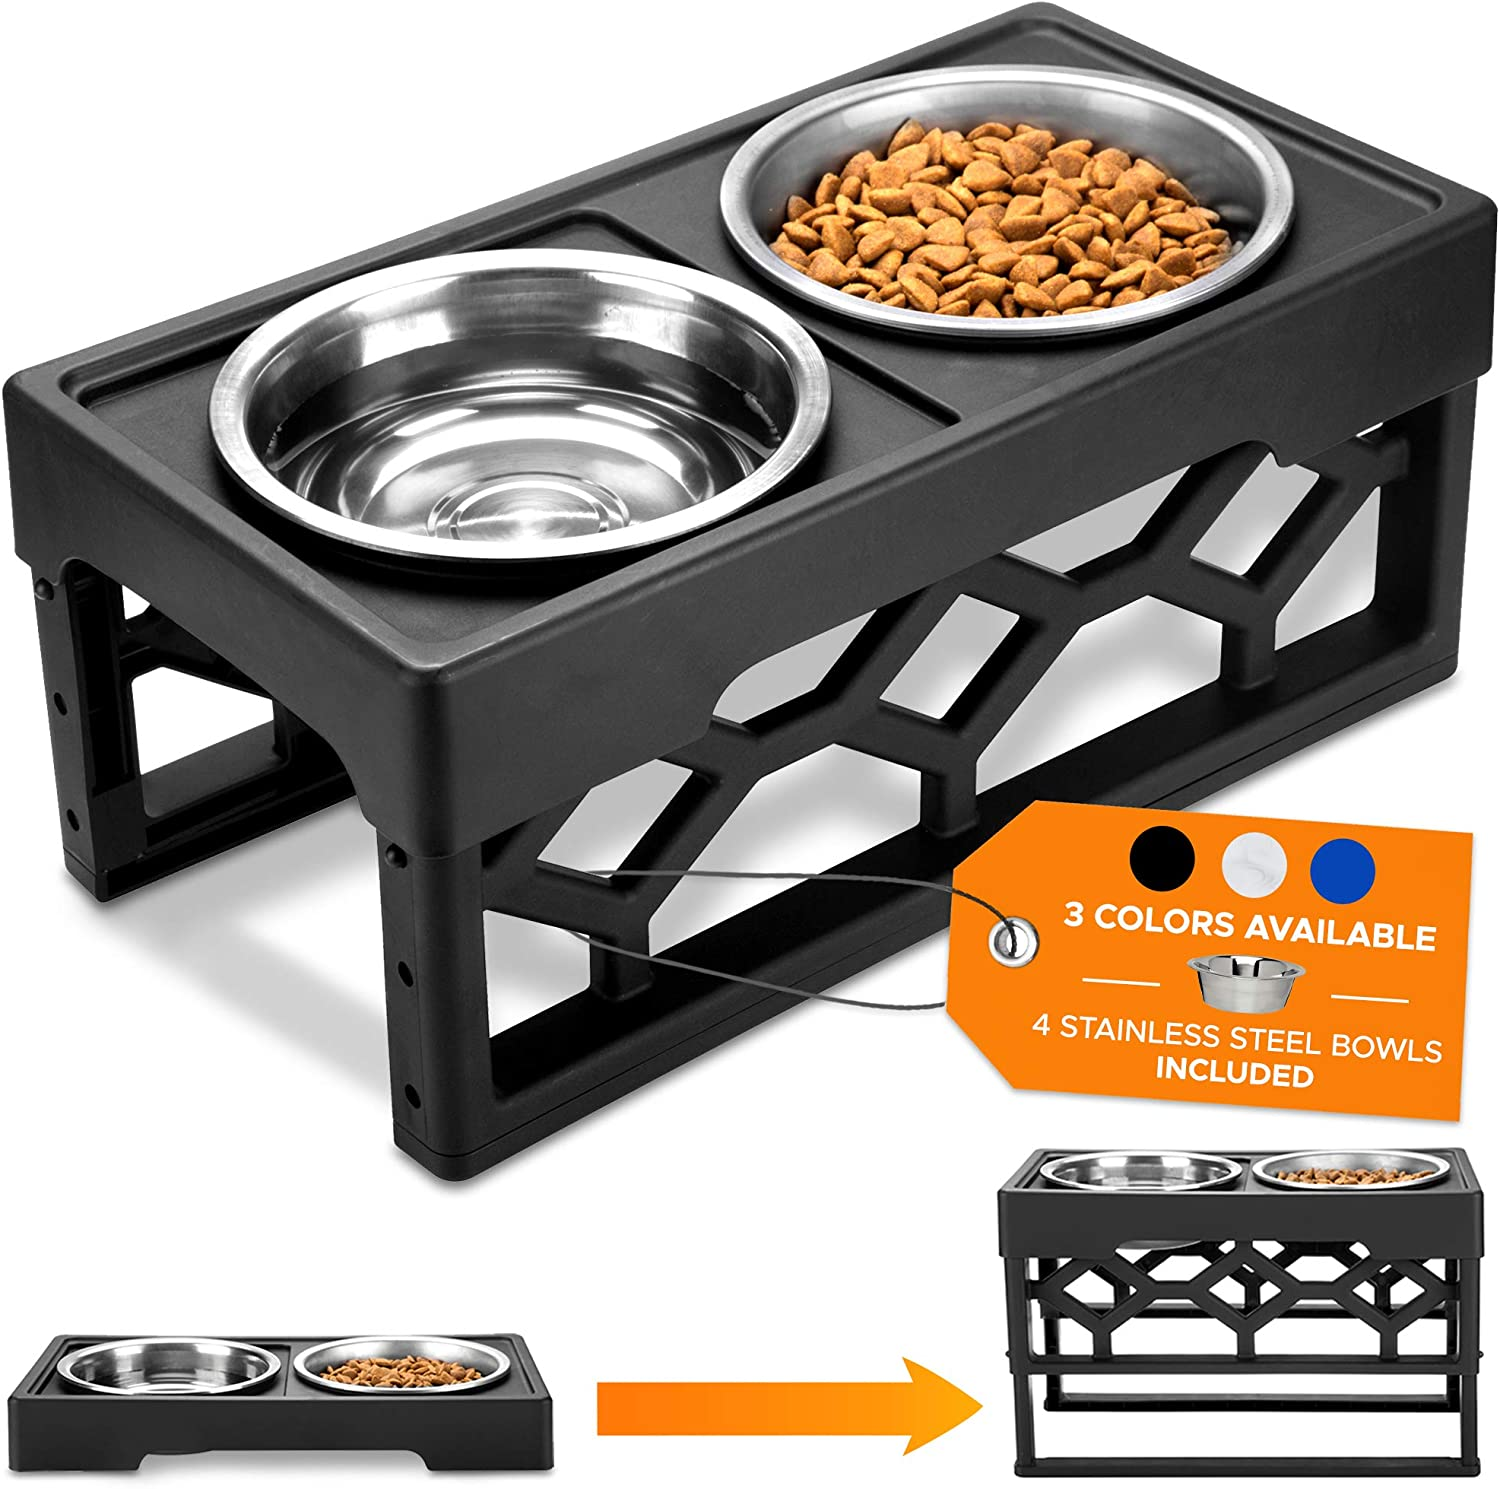 AVERYDAY Dog Food Stand Raised Dog Bowls For Large Dogs - 4 Adjustable Dog Bowl Stand + 4 Stainless Steel Dog Dish - Perfect Dog Feeder Raised Dog Bowl Elevated Dog Bowls For Large Dogs And Senior Dog